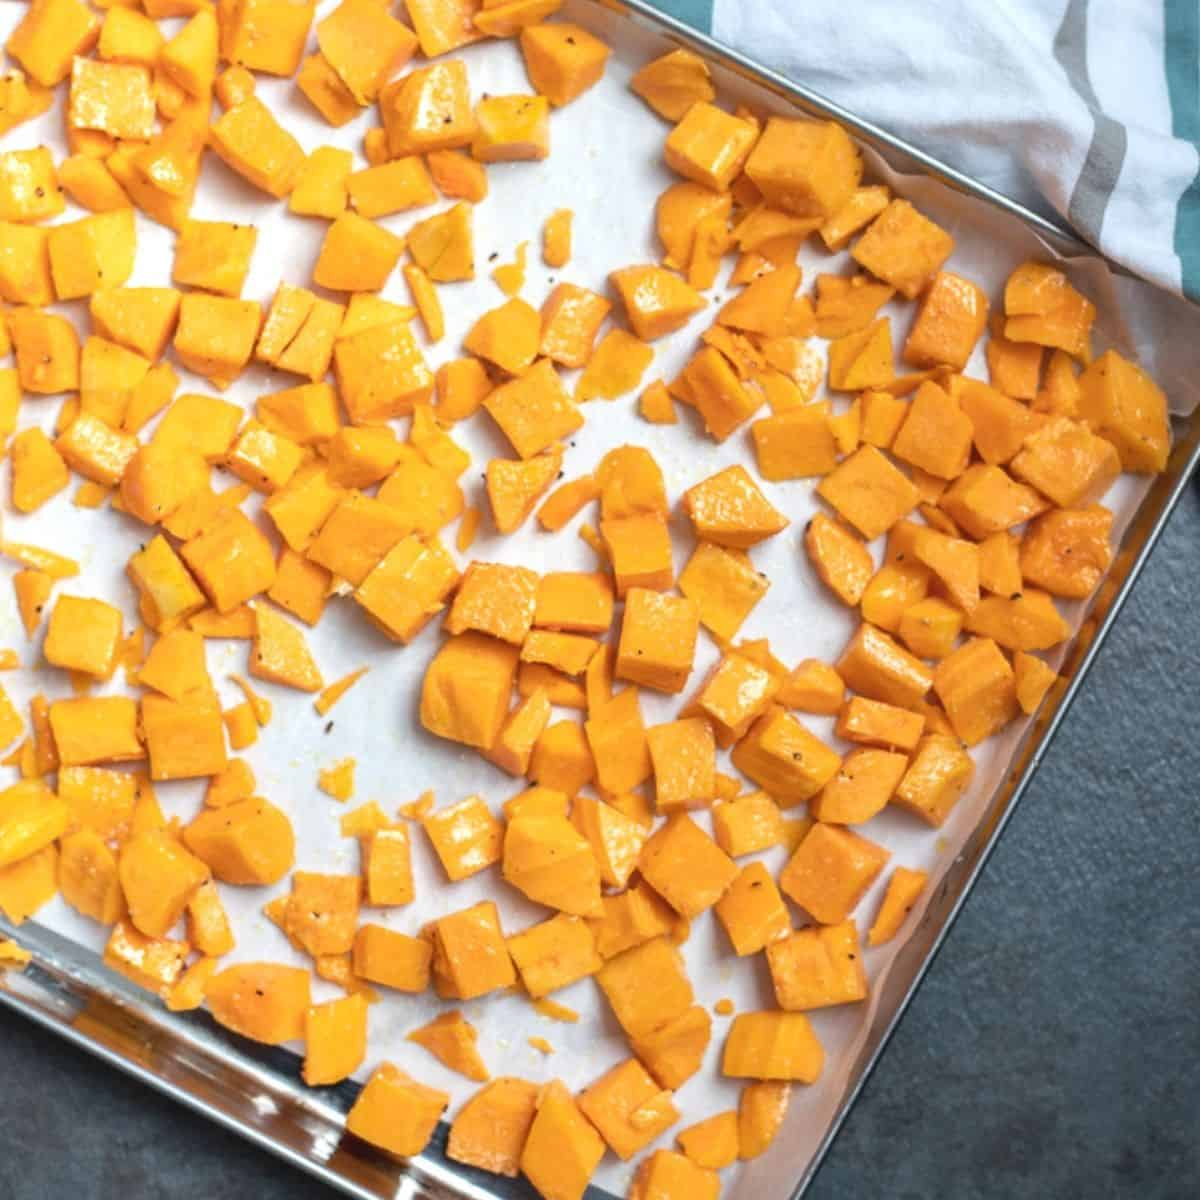 Butternut squash spread out in evenly layer on baking sheet.